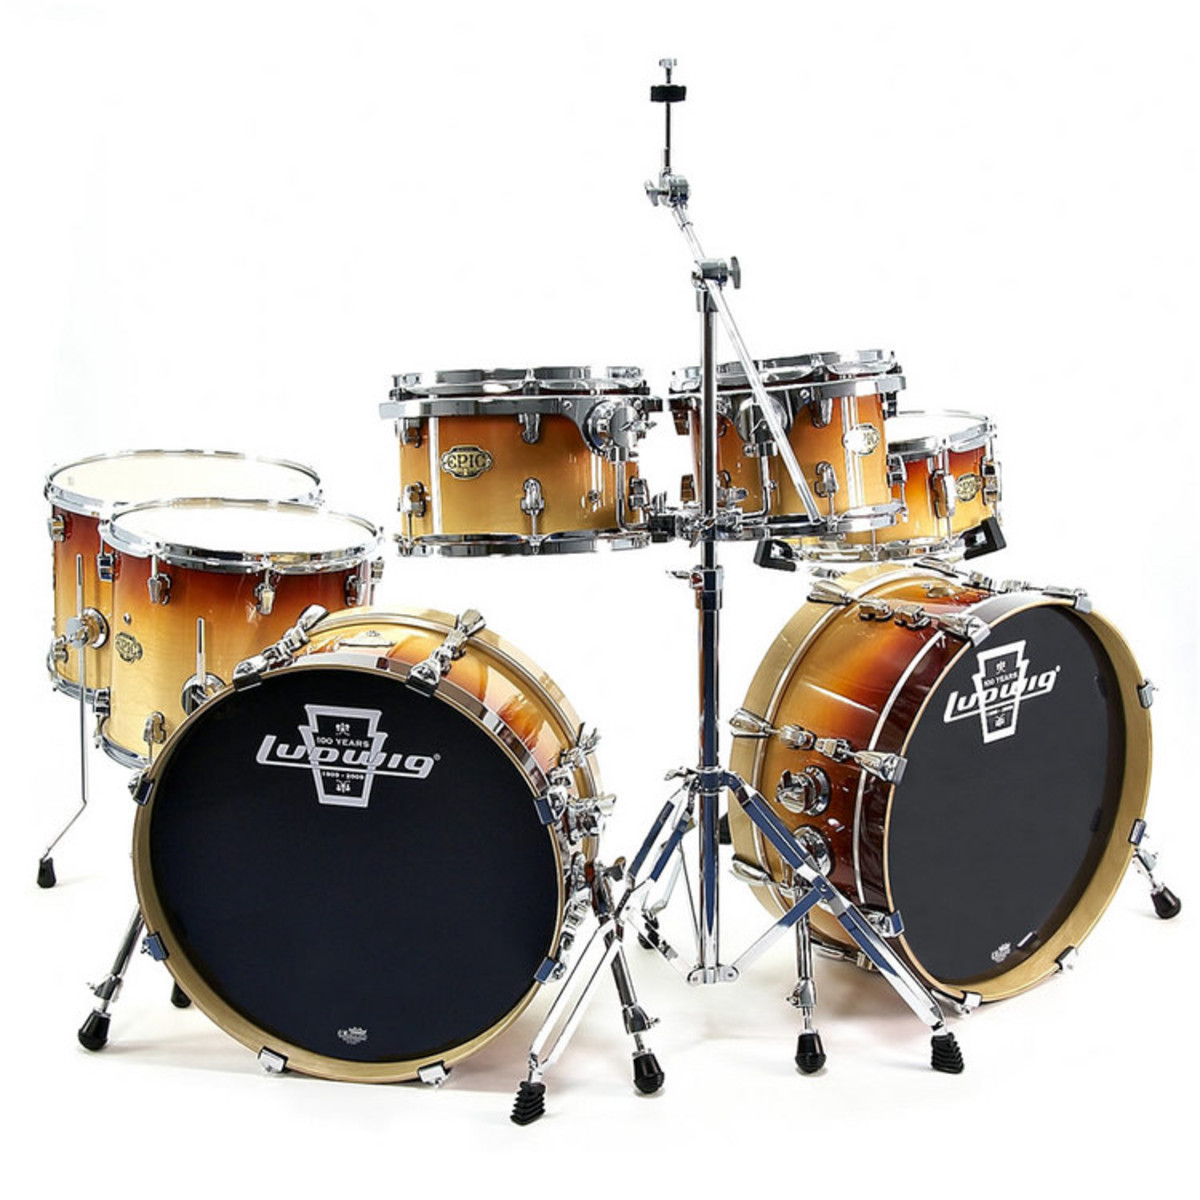 Ludwig Epic Modular Drum Kit In Tobacco Fade At Gear4music